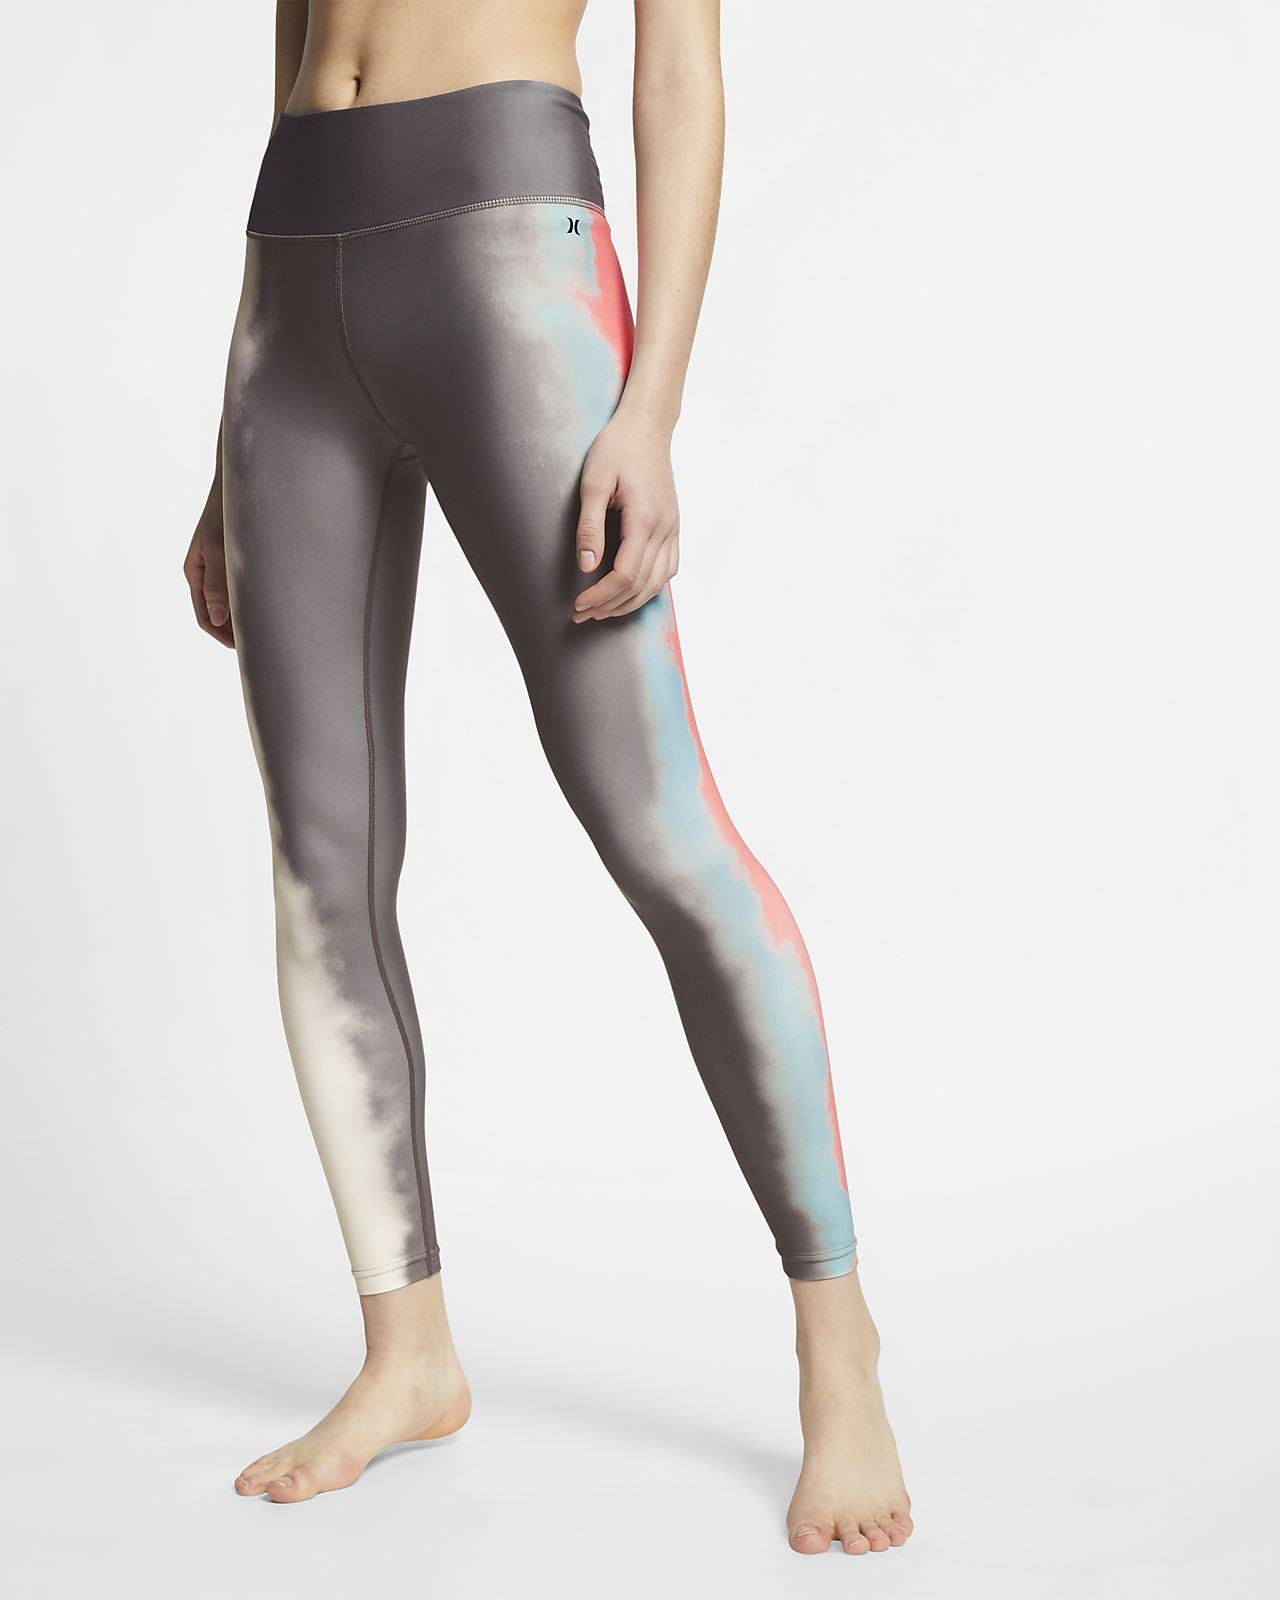 1db3e65e18f72 Hurley Quick Dry Gradient Women's Surf Leggings. Nike.com GB